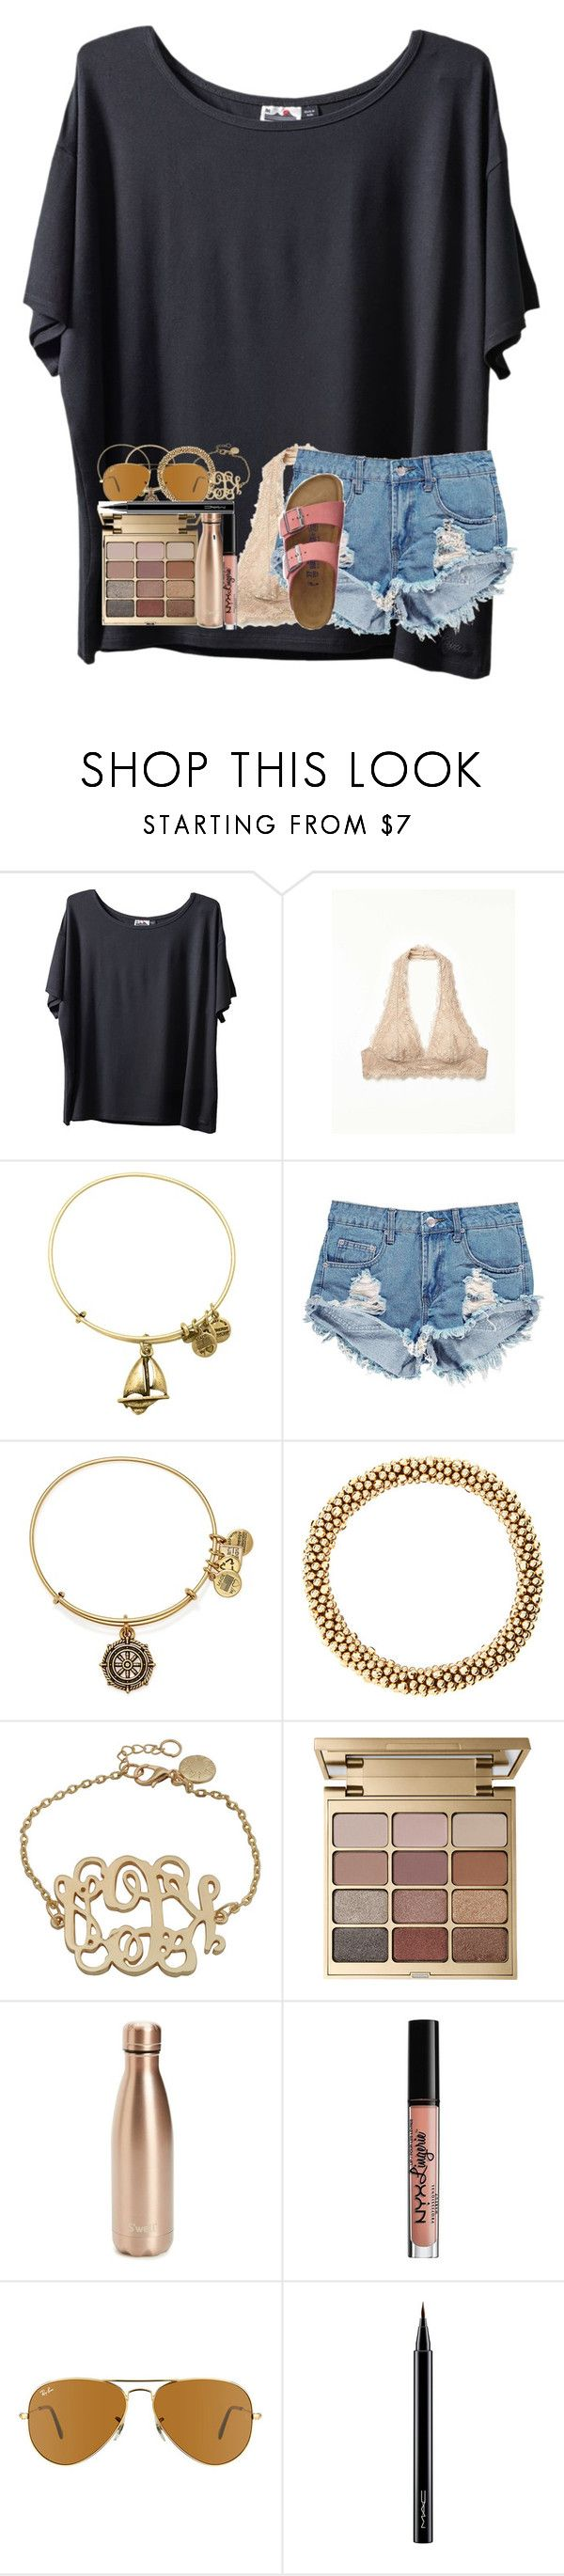 """Thanks guys for all the followers, I really appreciate it, ❤ y'all"" by abigailcdunn ❤ liked on Polyvore featuring Kavu, Free People, Alex and Ani, Boohoo, Stila, S'well, NYX, Ray-Ban, MAC Cosmetics and TravelSmith"